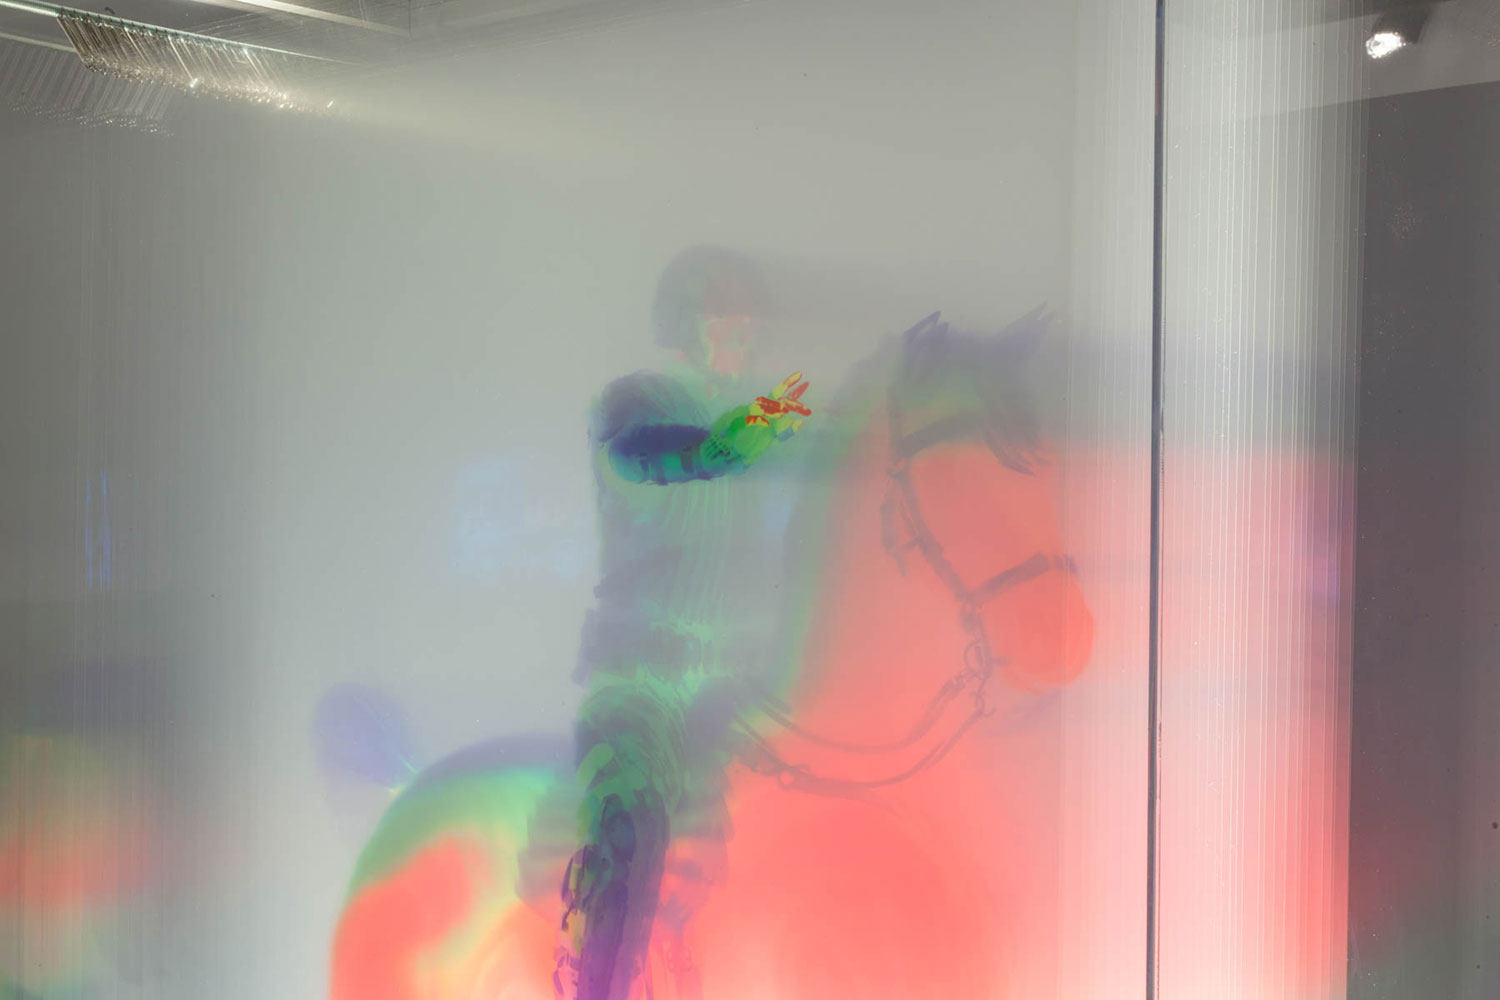 """Regisole , 2016, Edition of 4, 33 layers of printed film in lit display case, 81"""" x 46"""" x 22"""" (Detail)"""